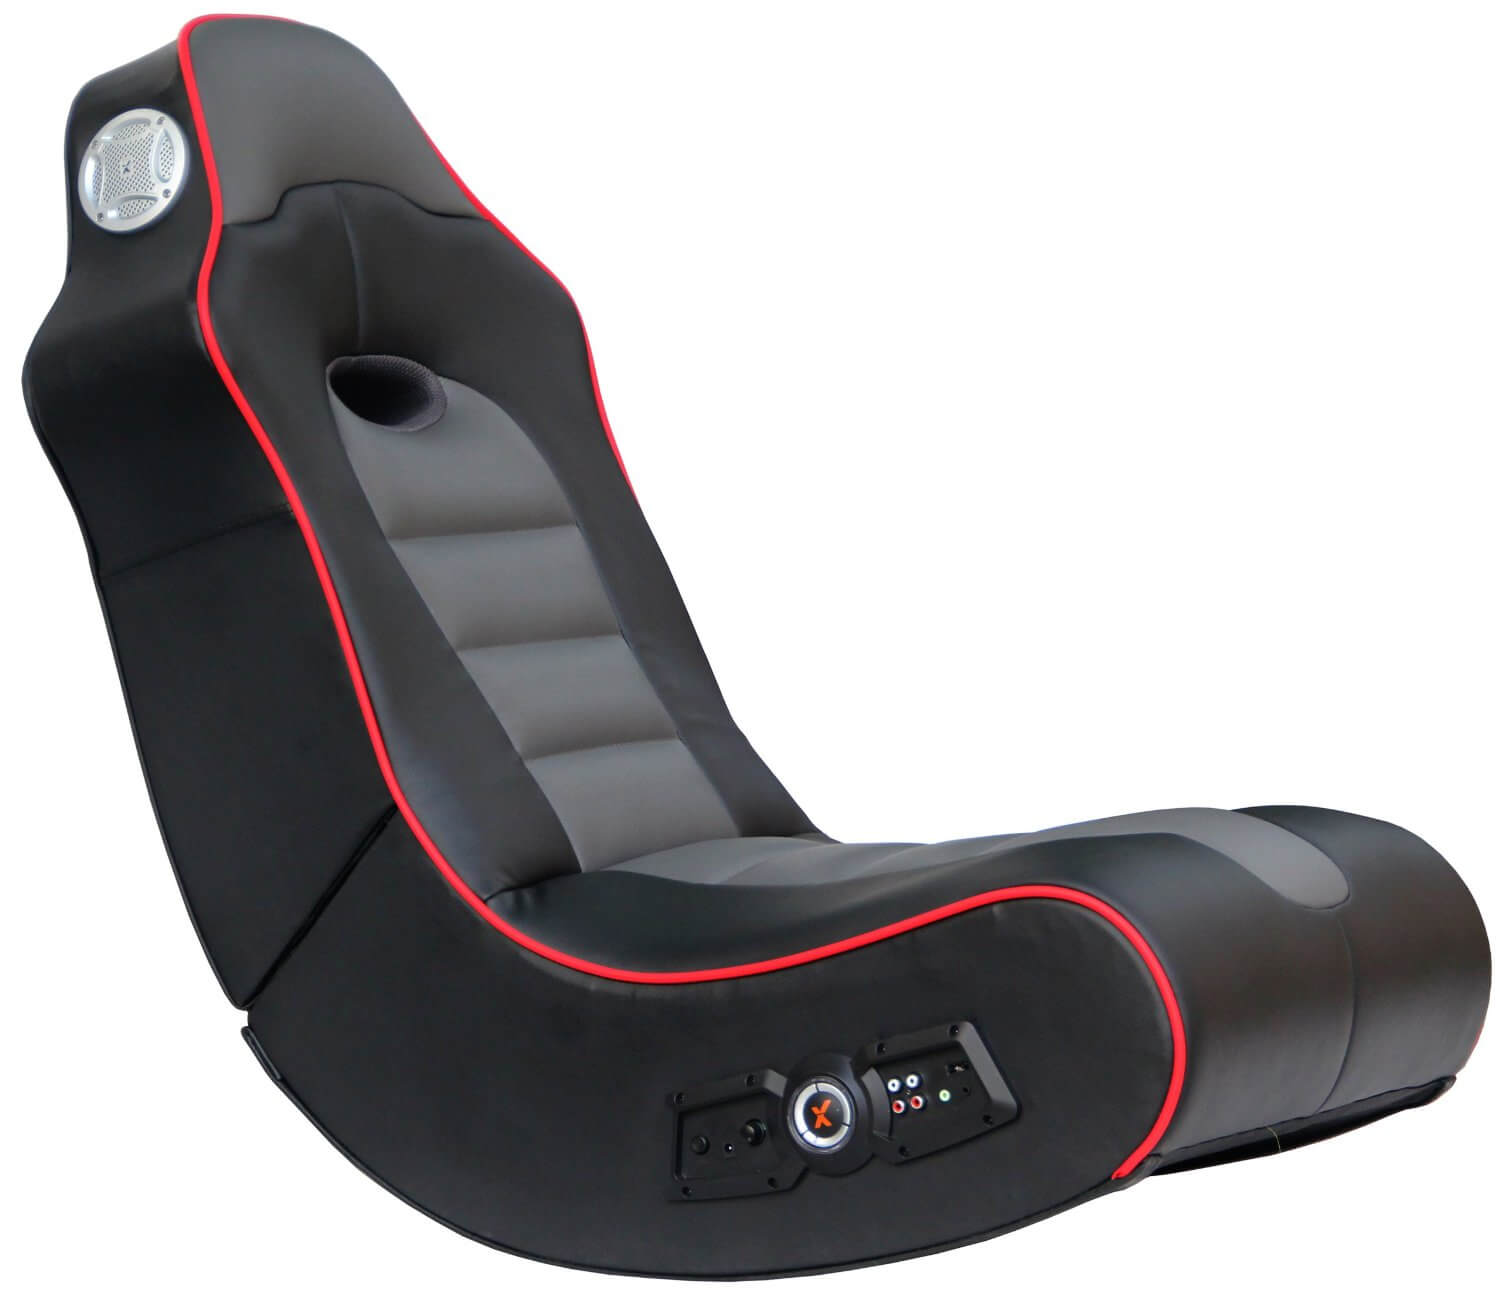 Best gaming chair list updated july 2018 25 chairs for Silla razer gamer